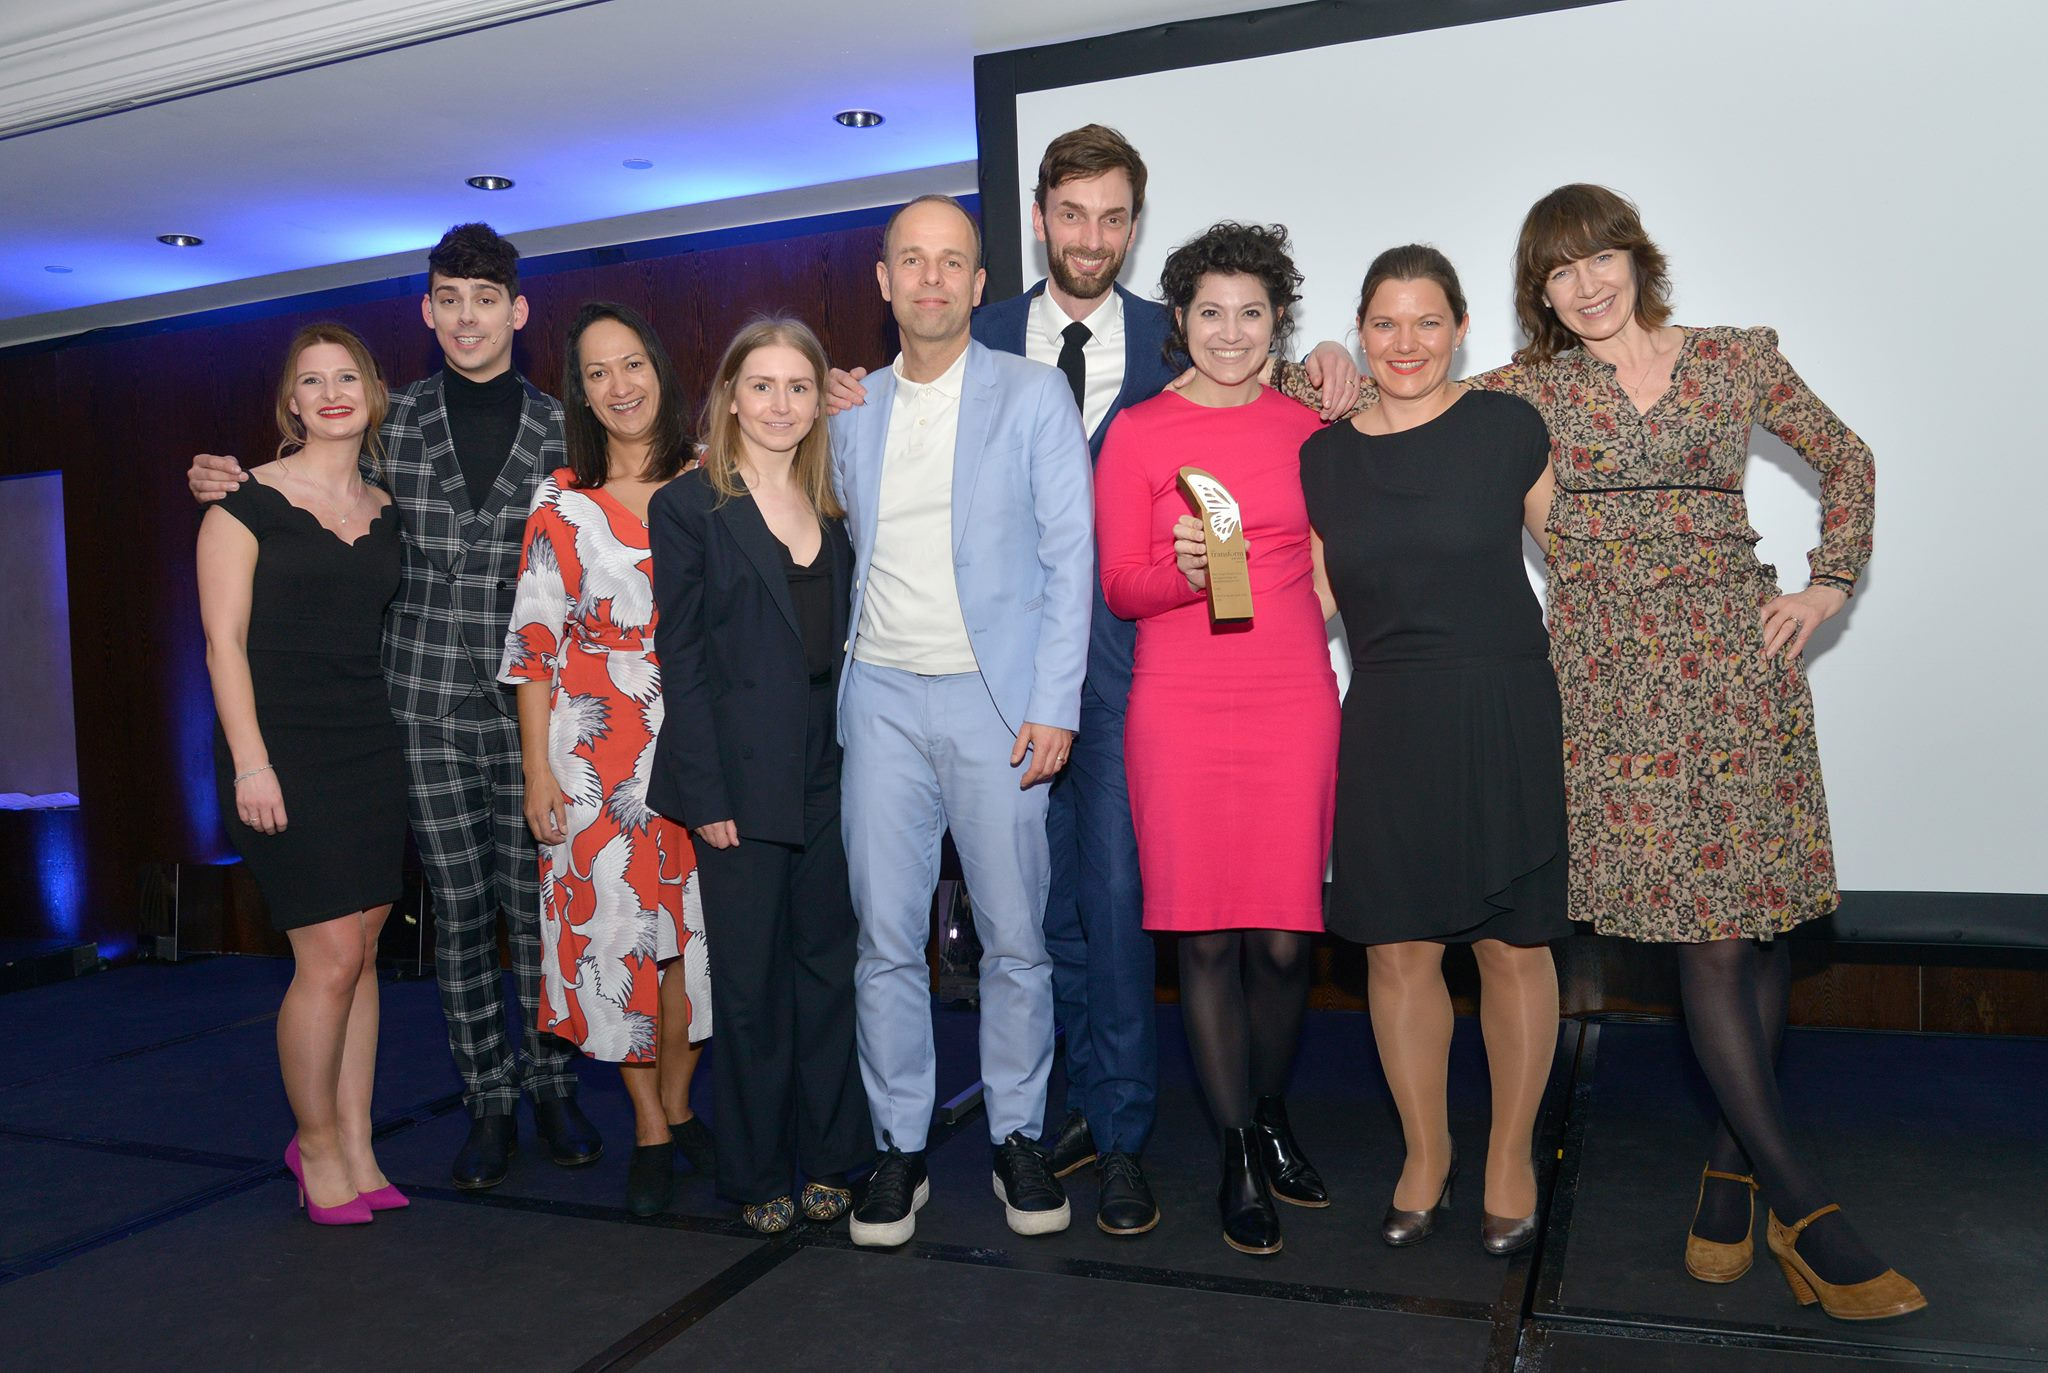 Two Golds and two Silvers at last night's 2018 Transform Awards